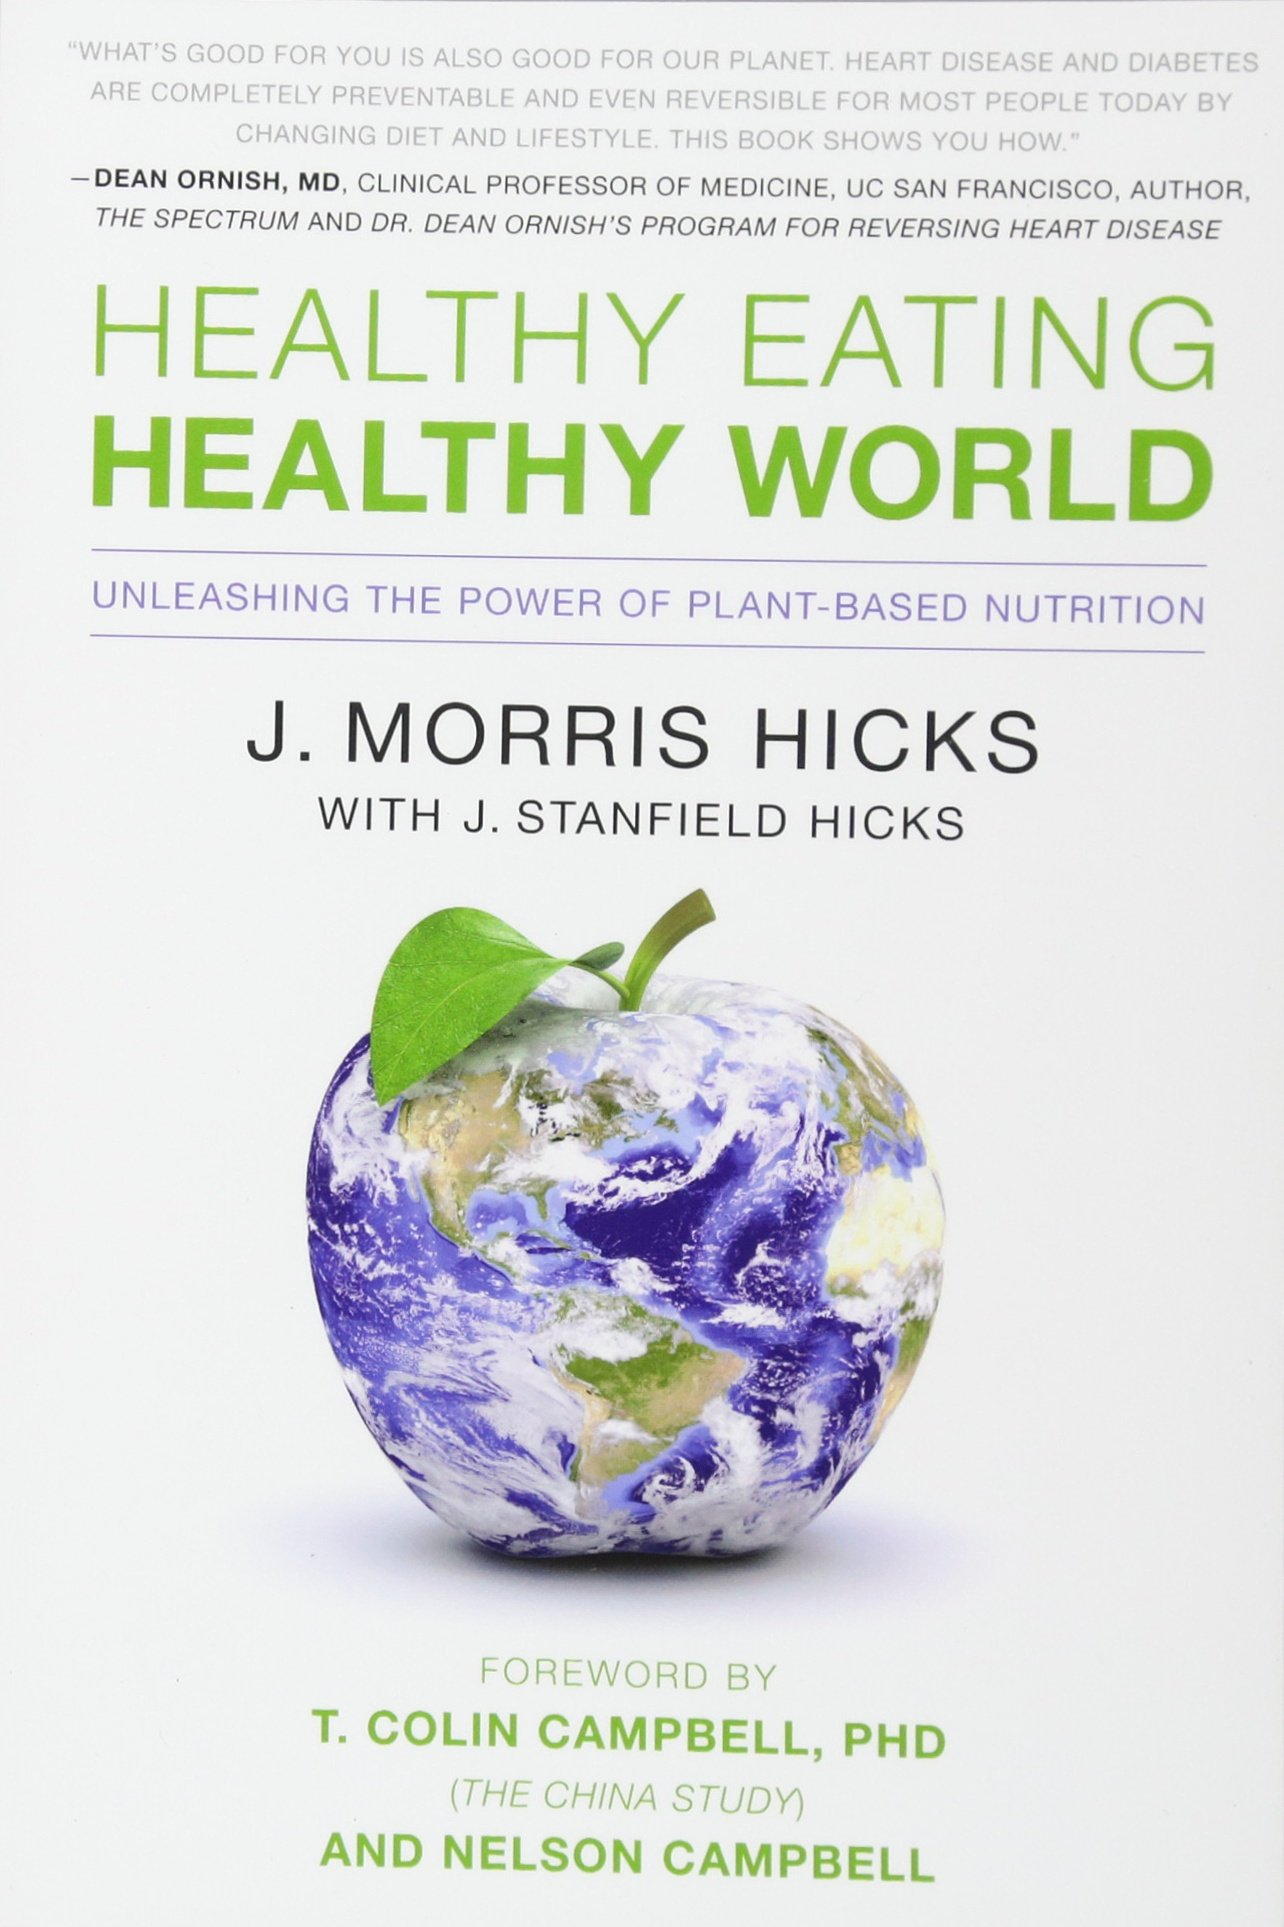 Healthy Eating, Healthy World: Unleashing the Power of Plant-Based Nutrition:  J. Morris Hicks, T. Colin Campbell Ph.D.: 9781936661046: Amazon.com: Books